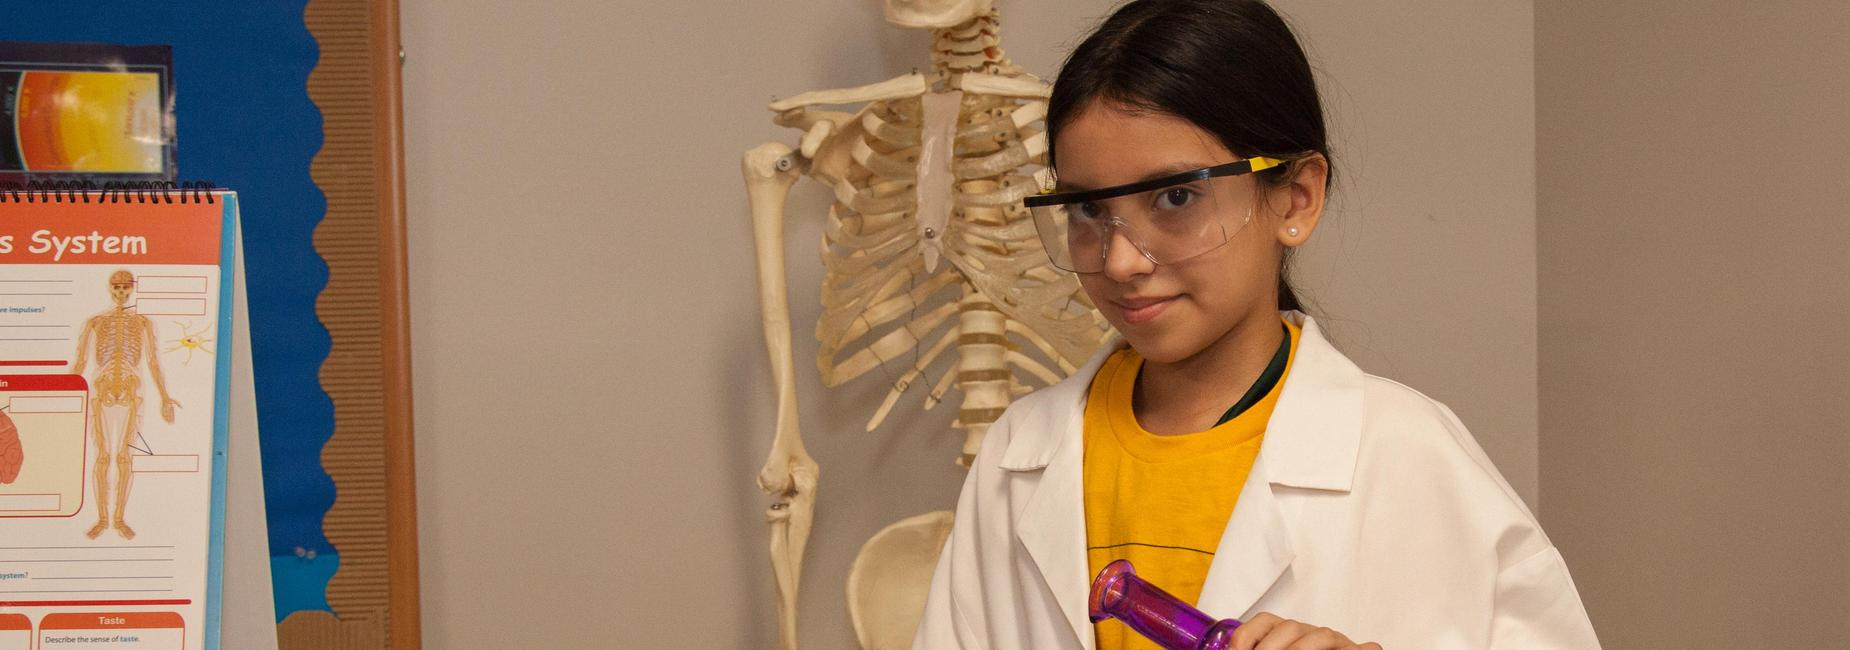 female middle school student in science lab